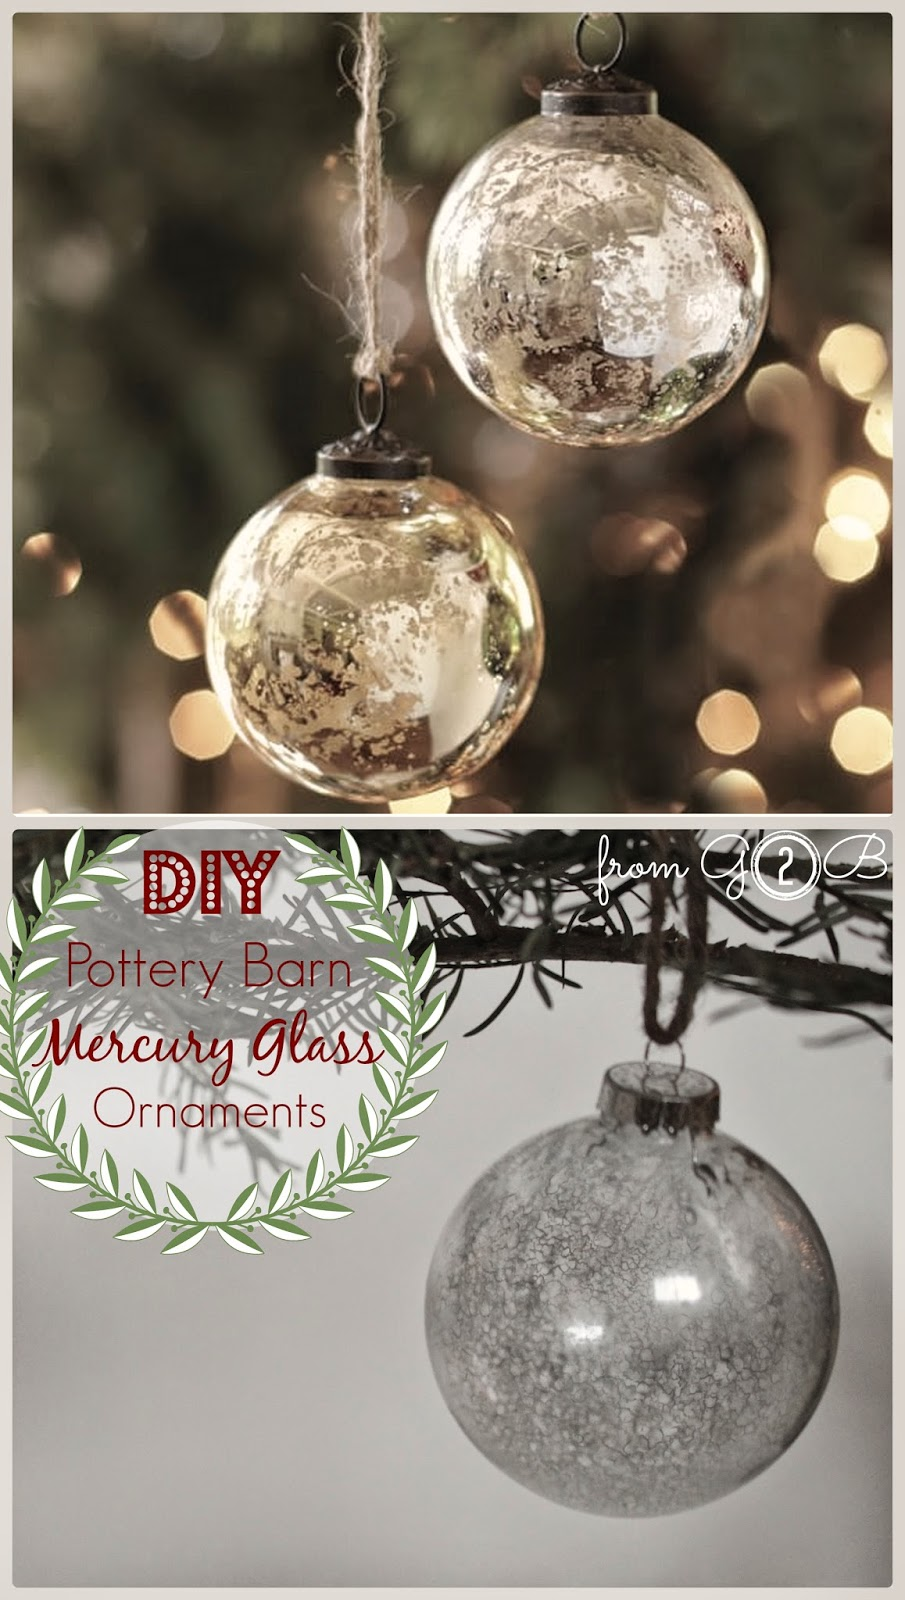 Pottery barn christmas ornaments - From Gardners 2 Bergers Diy Pottery Barn Mercury Glass Ornaments